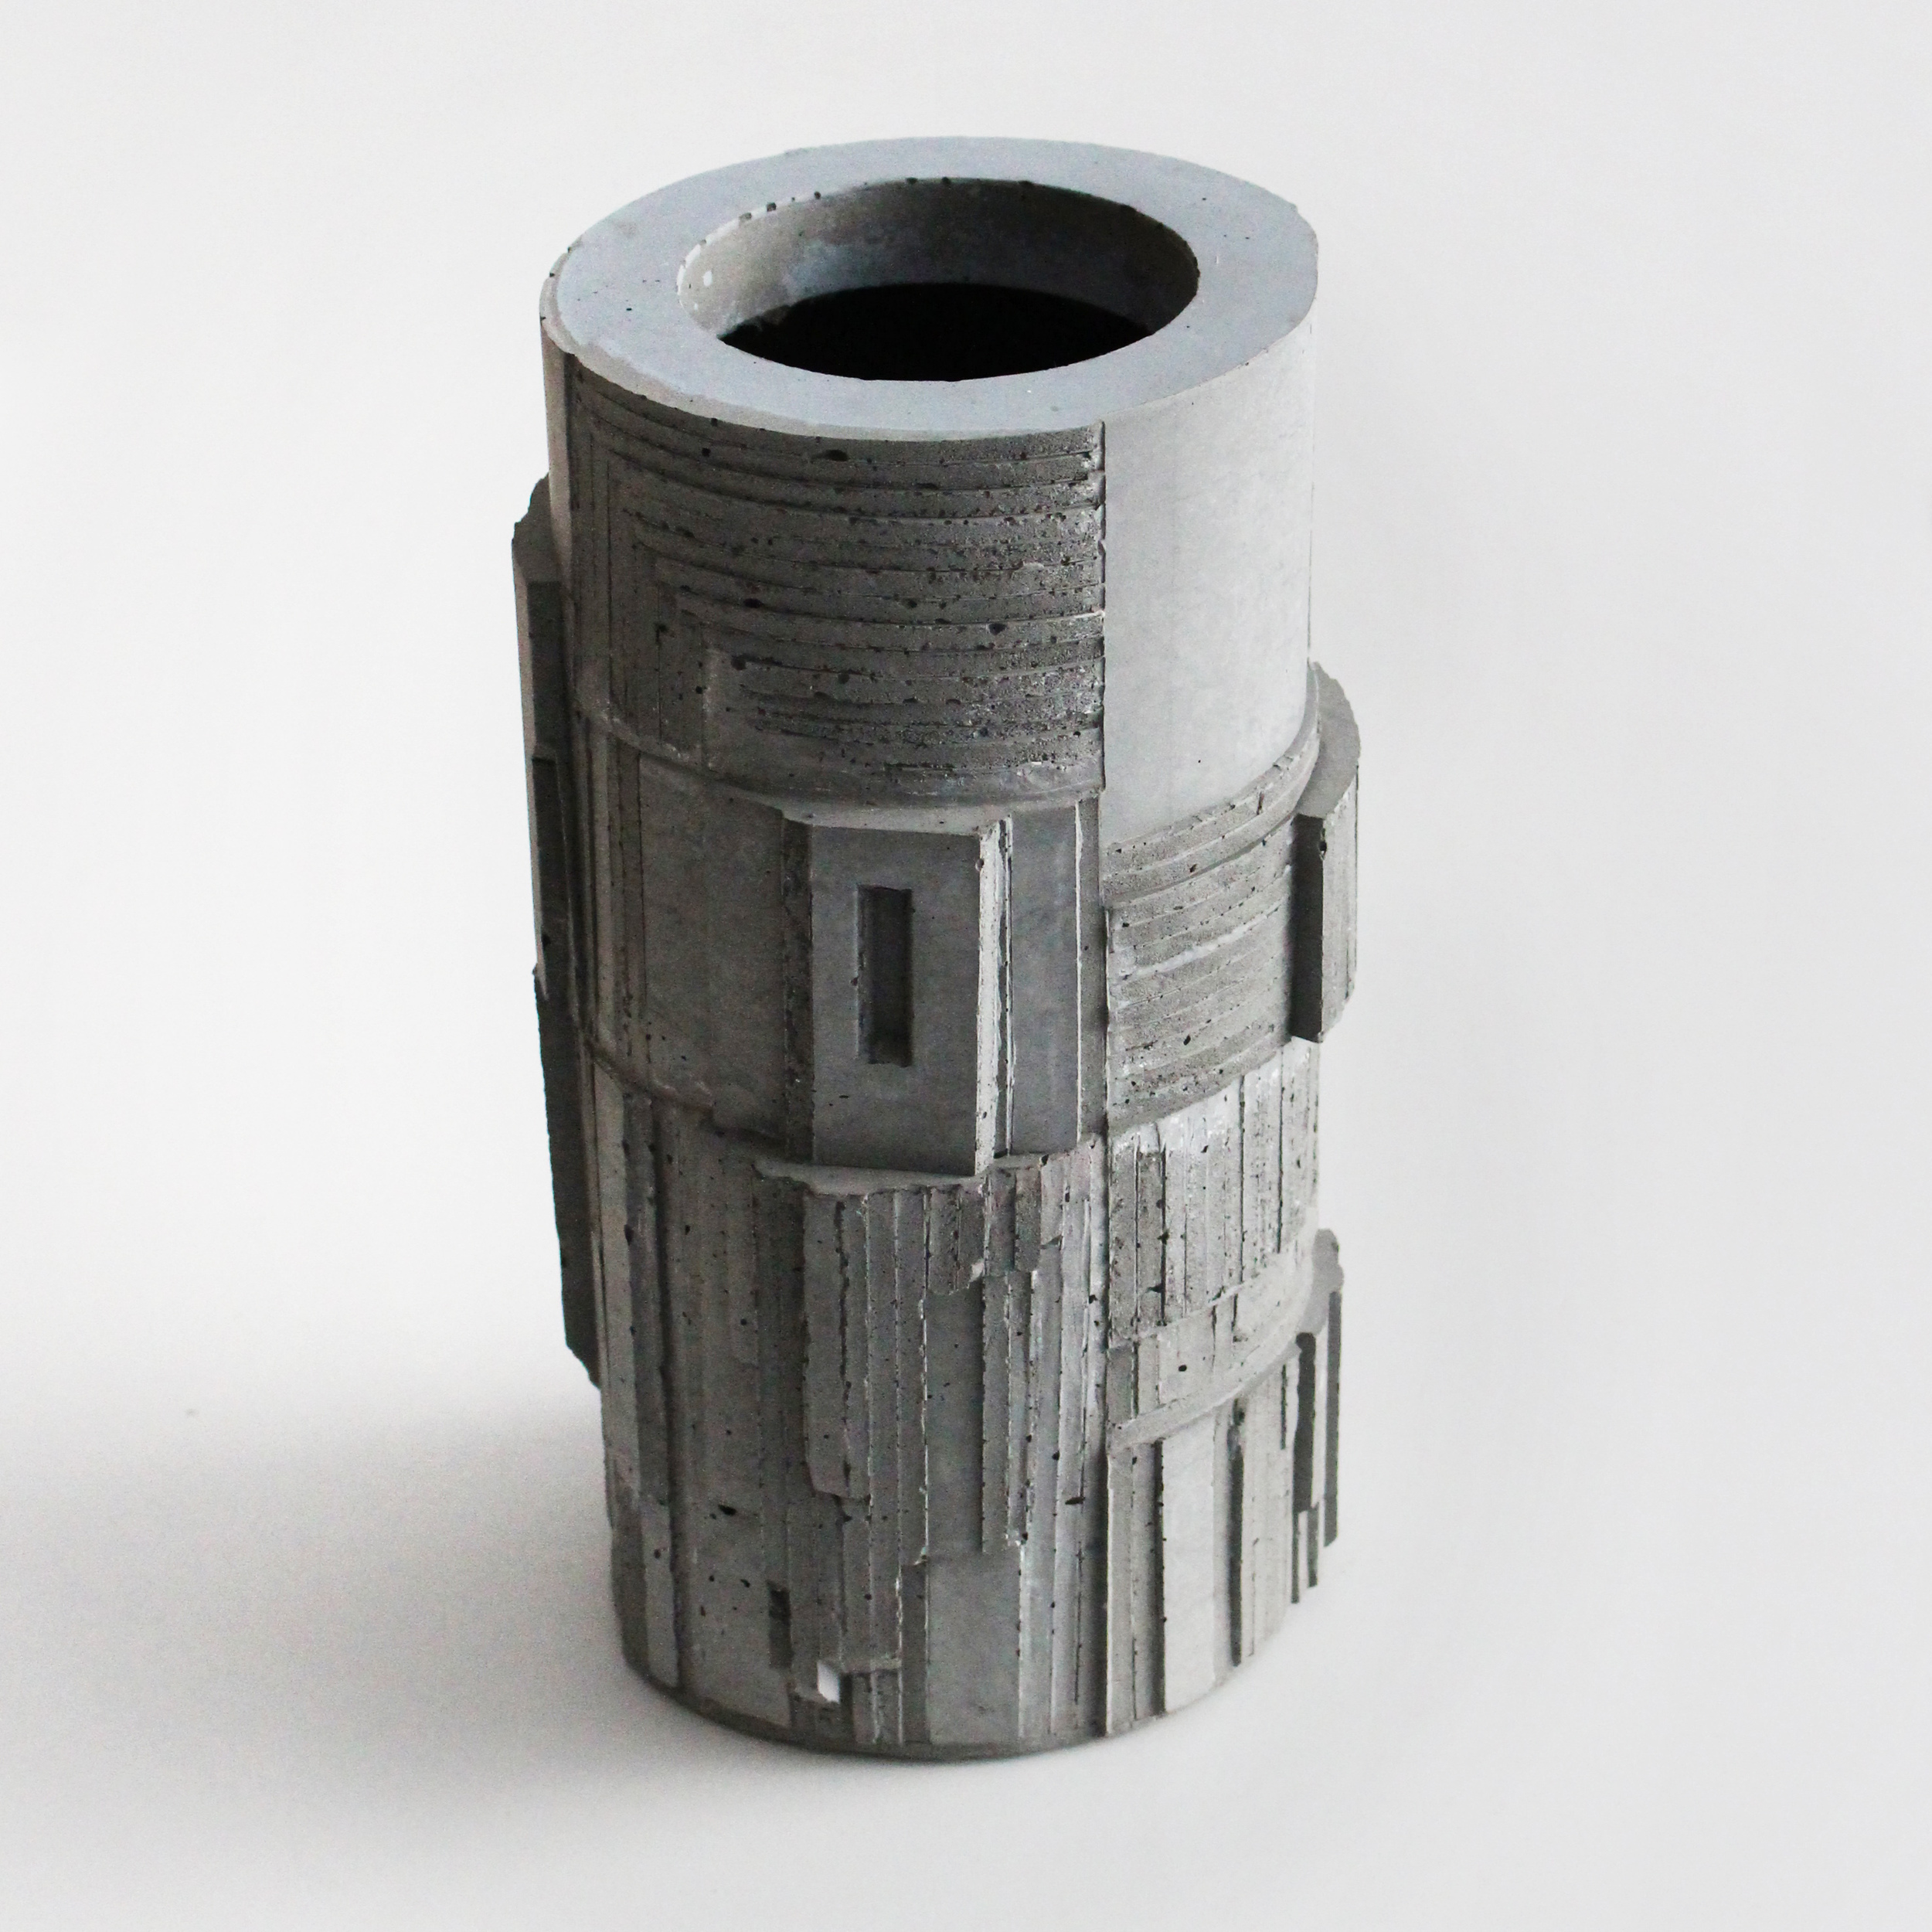 Brutalist Concrete Vase, by David Umemoto. Scroll down to see it's many stages of fabrication.